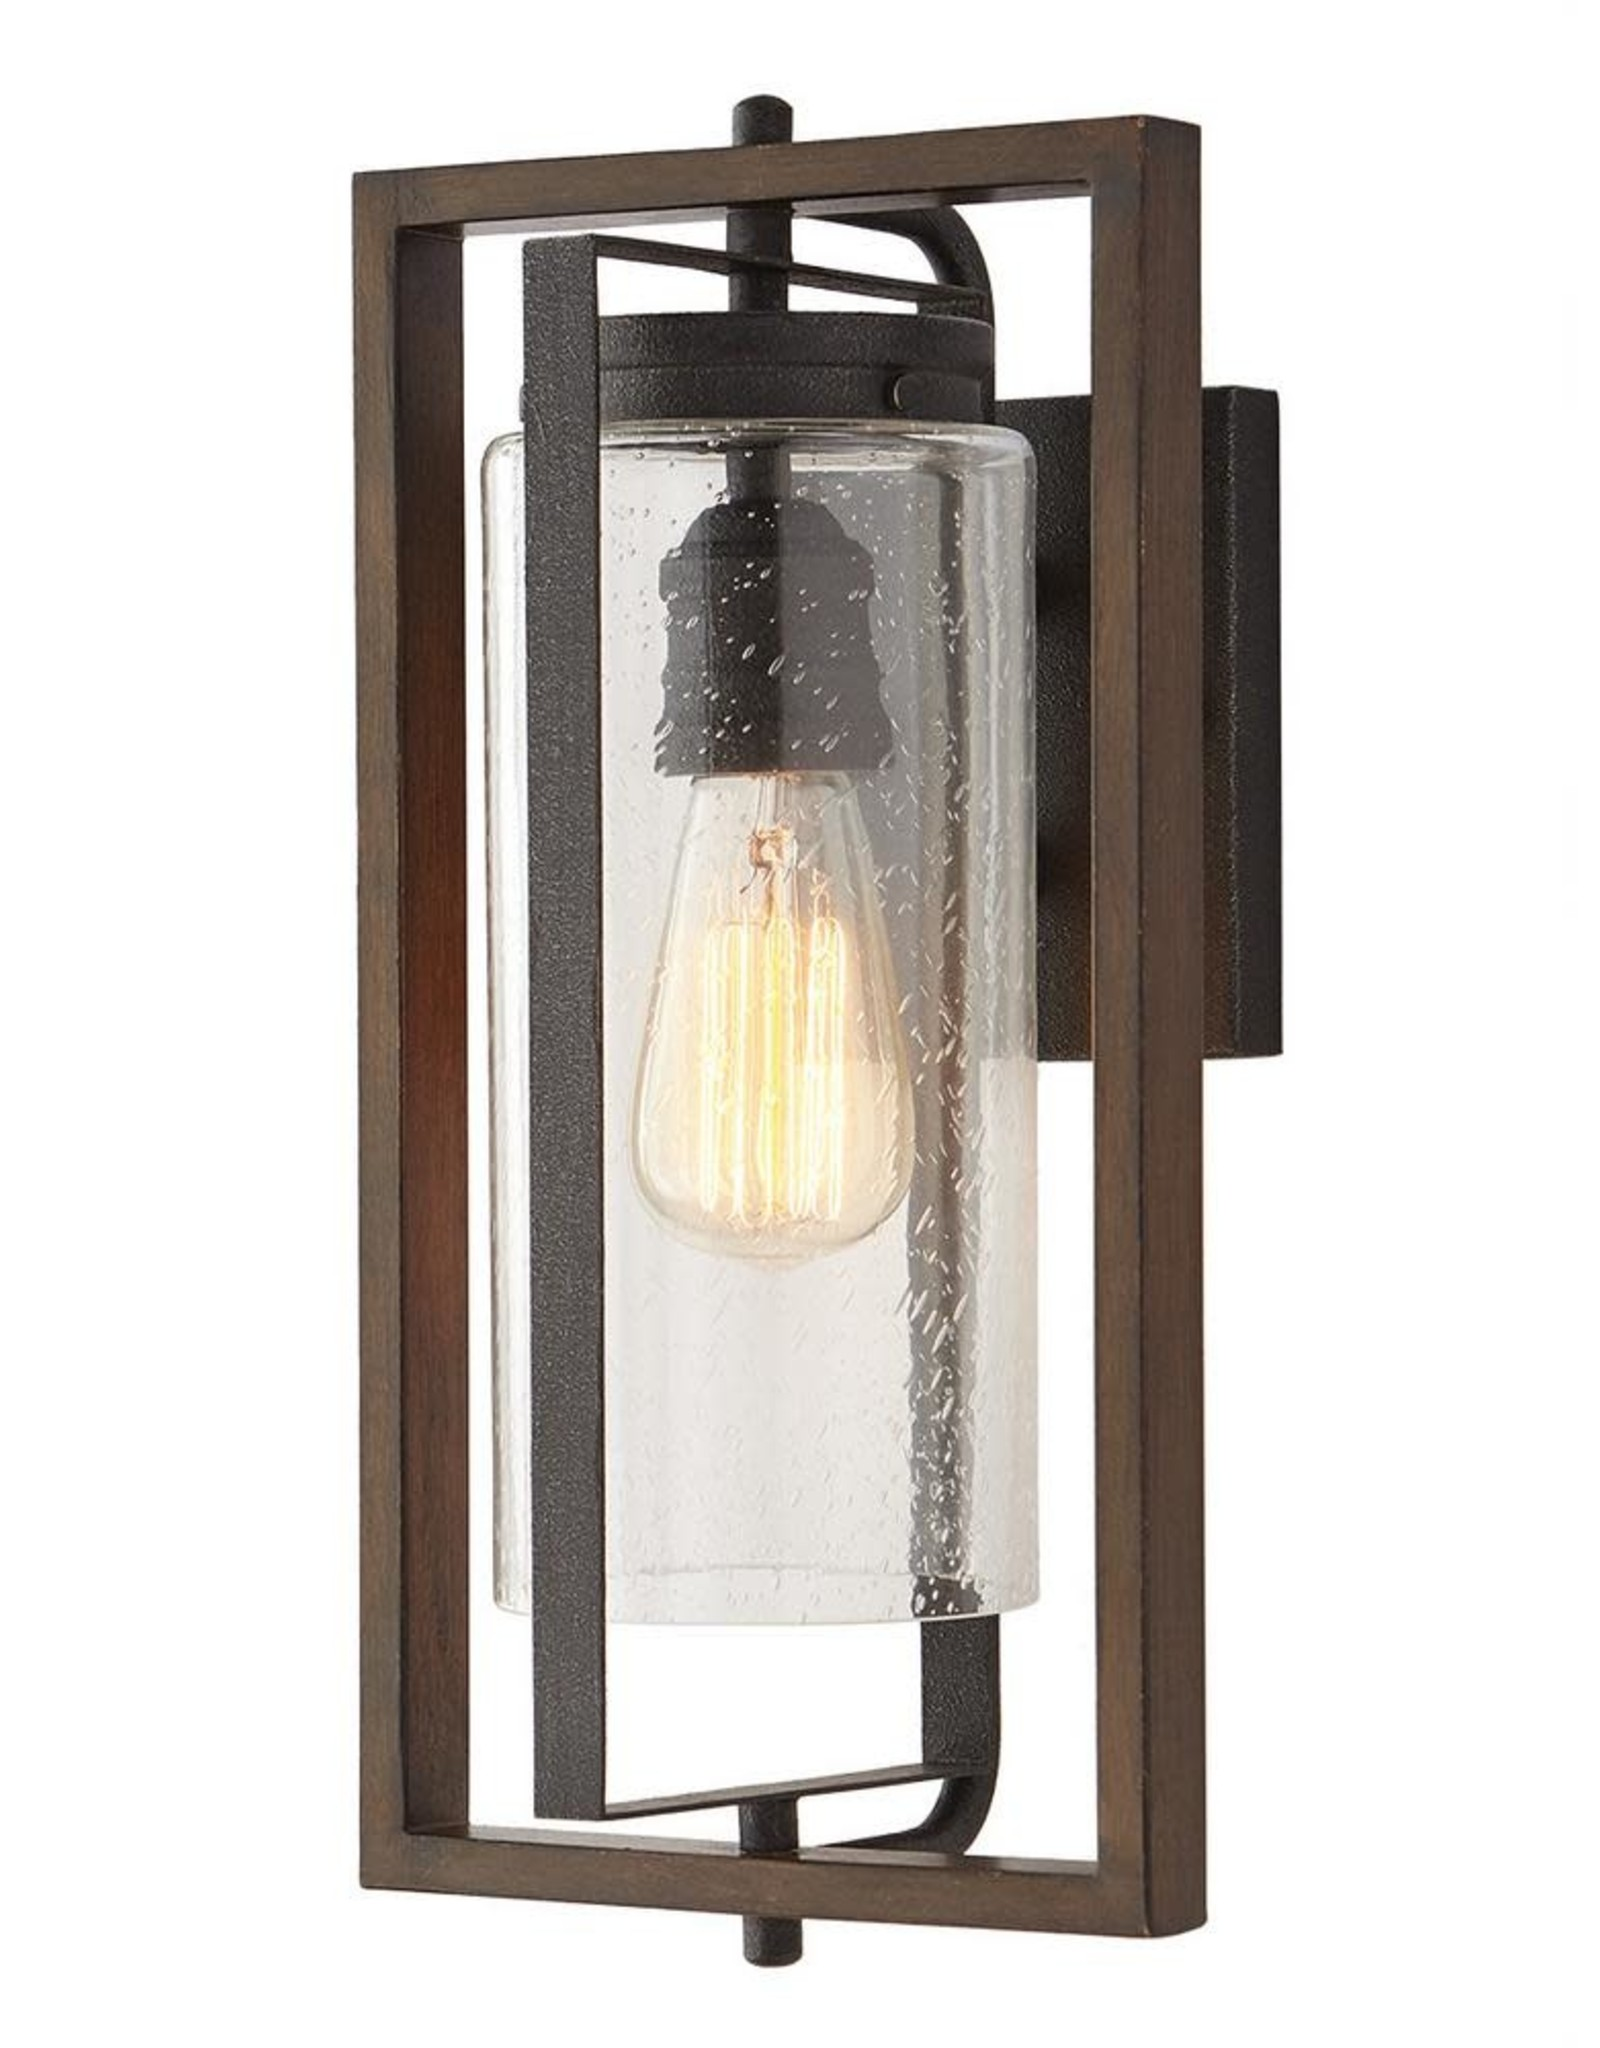 Home Decorators Collection Palermo Grove 1-Light Gilded Iron Outdoor Wall Lantern Sconce with Walnut Wood Accents